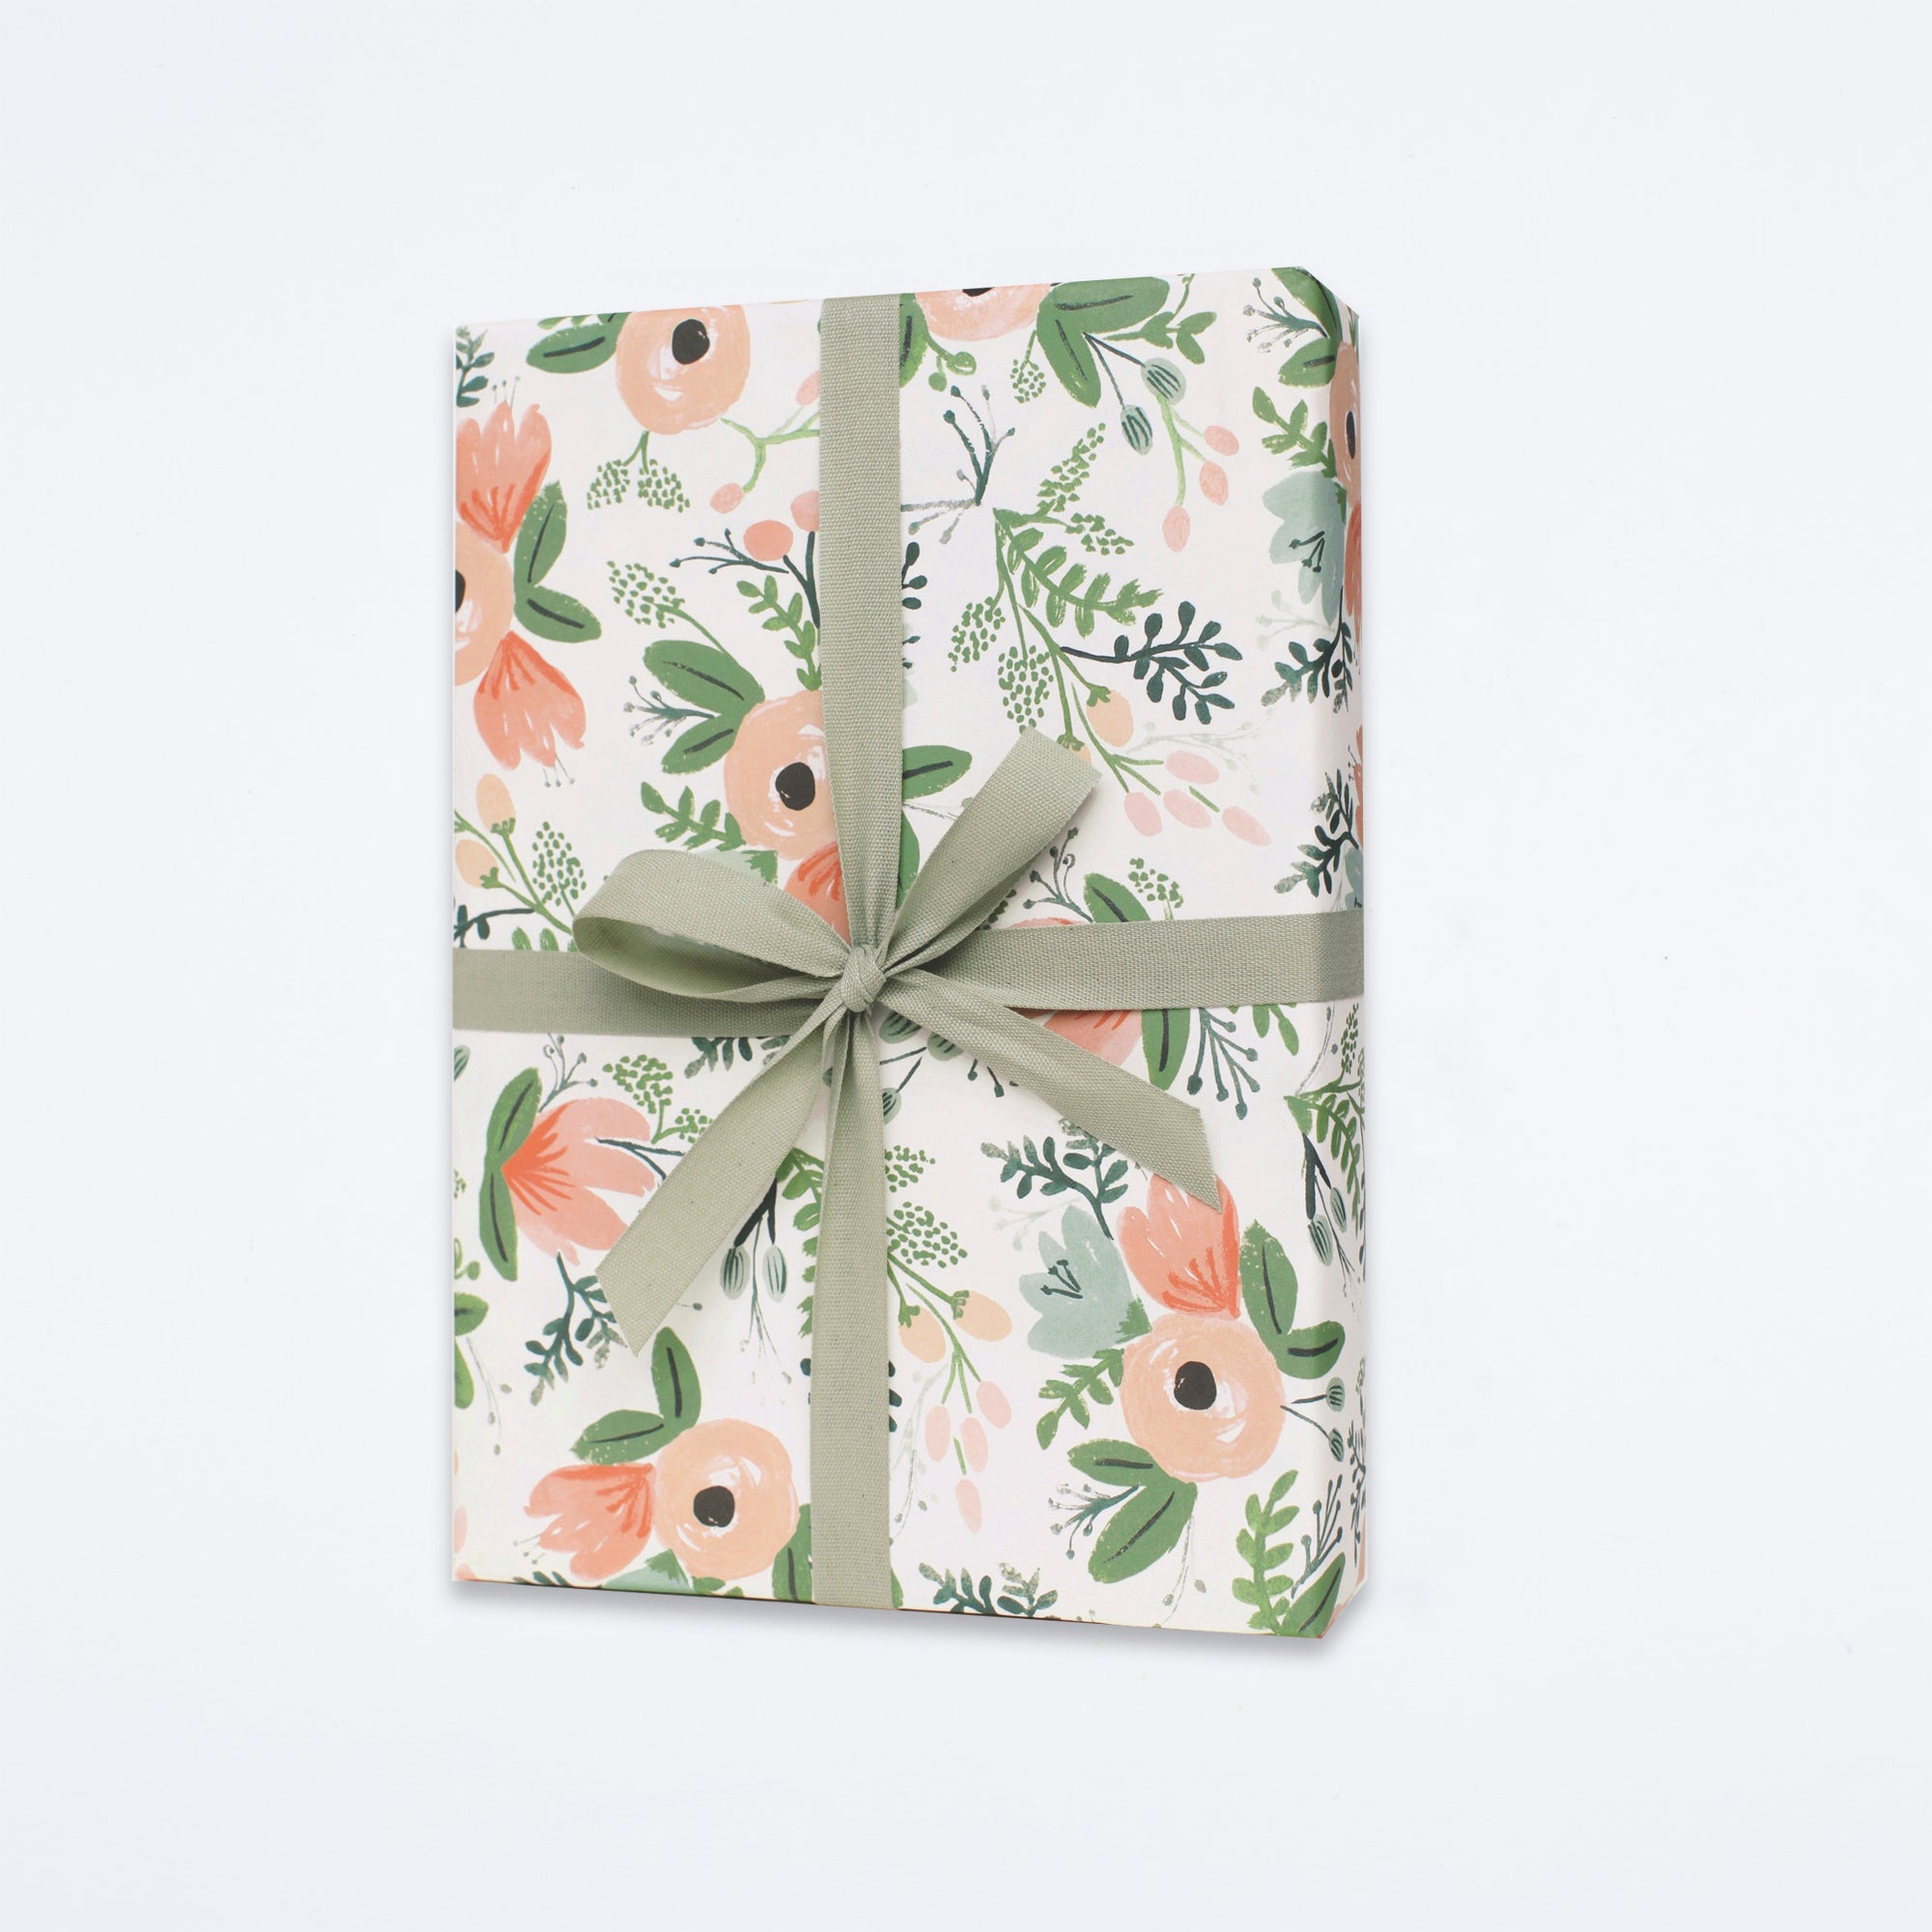 Wildflowers Wrapping Sheet